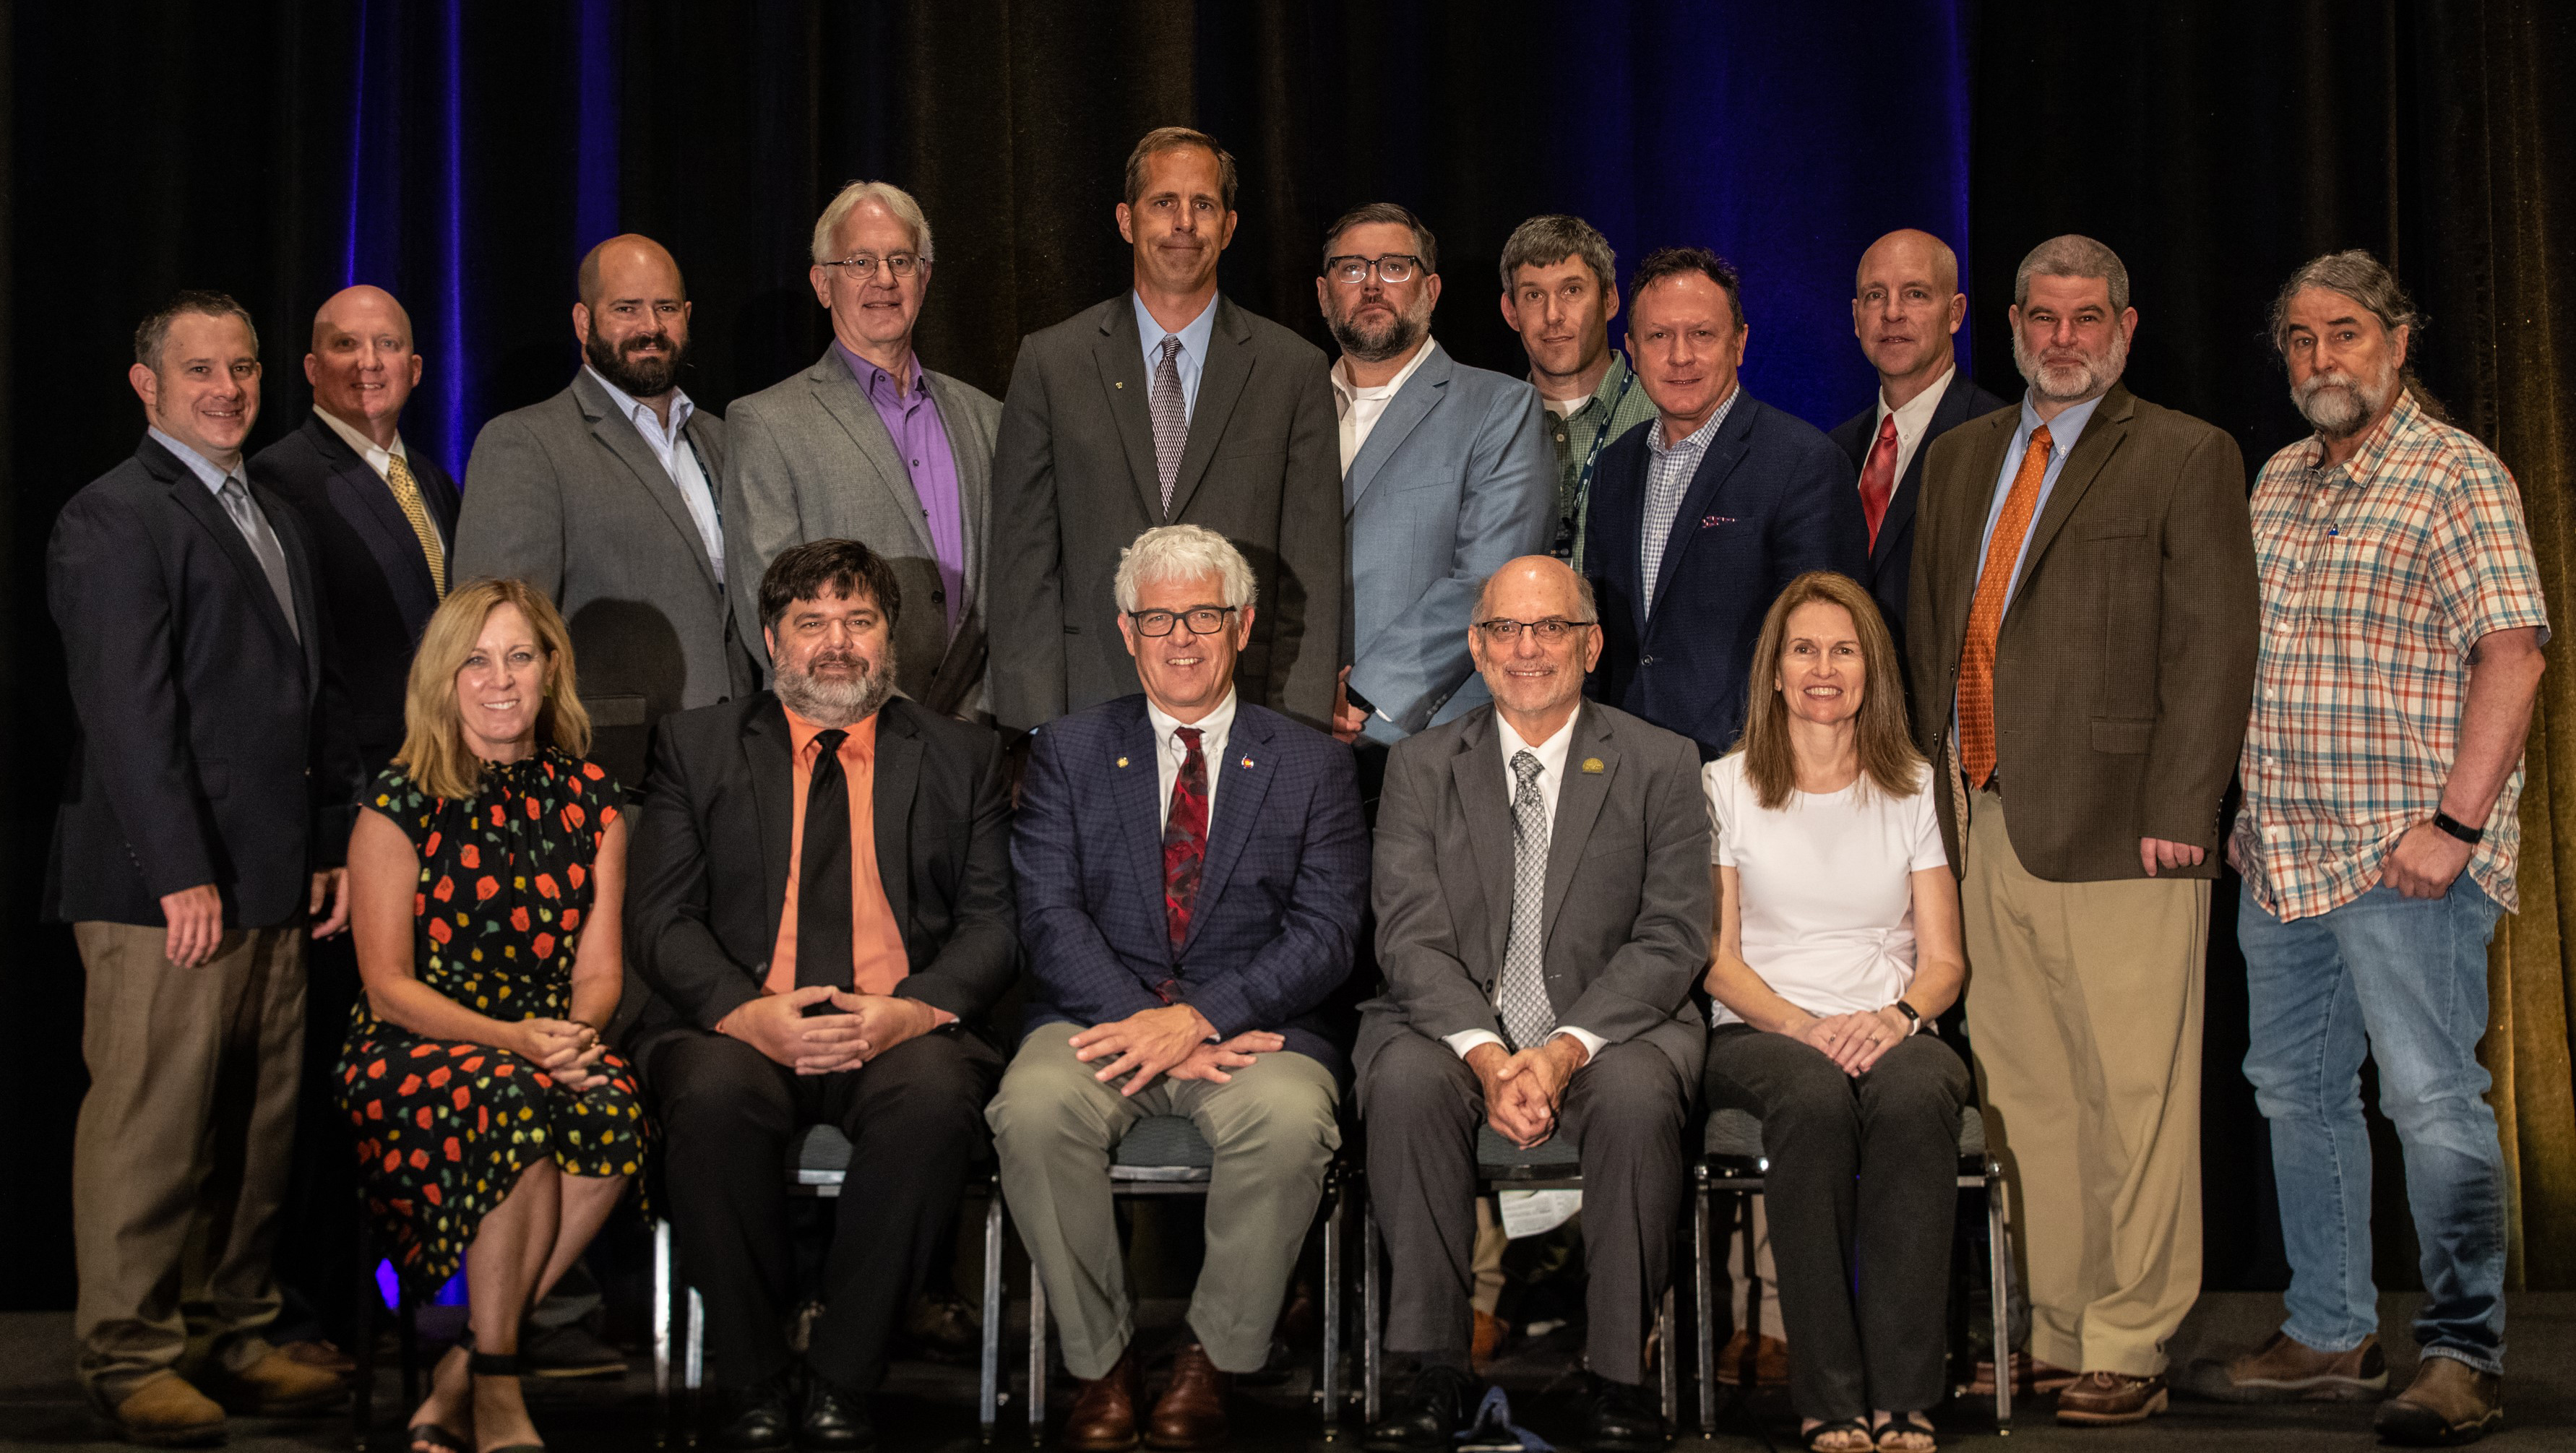 Welcome to the 2021-2022 Board of Directors